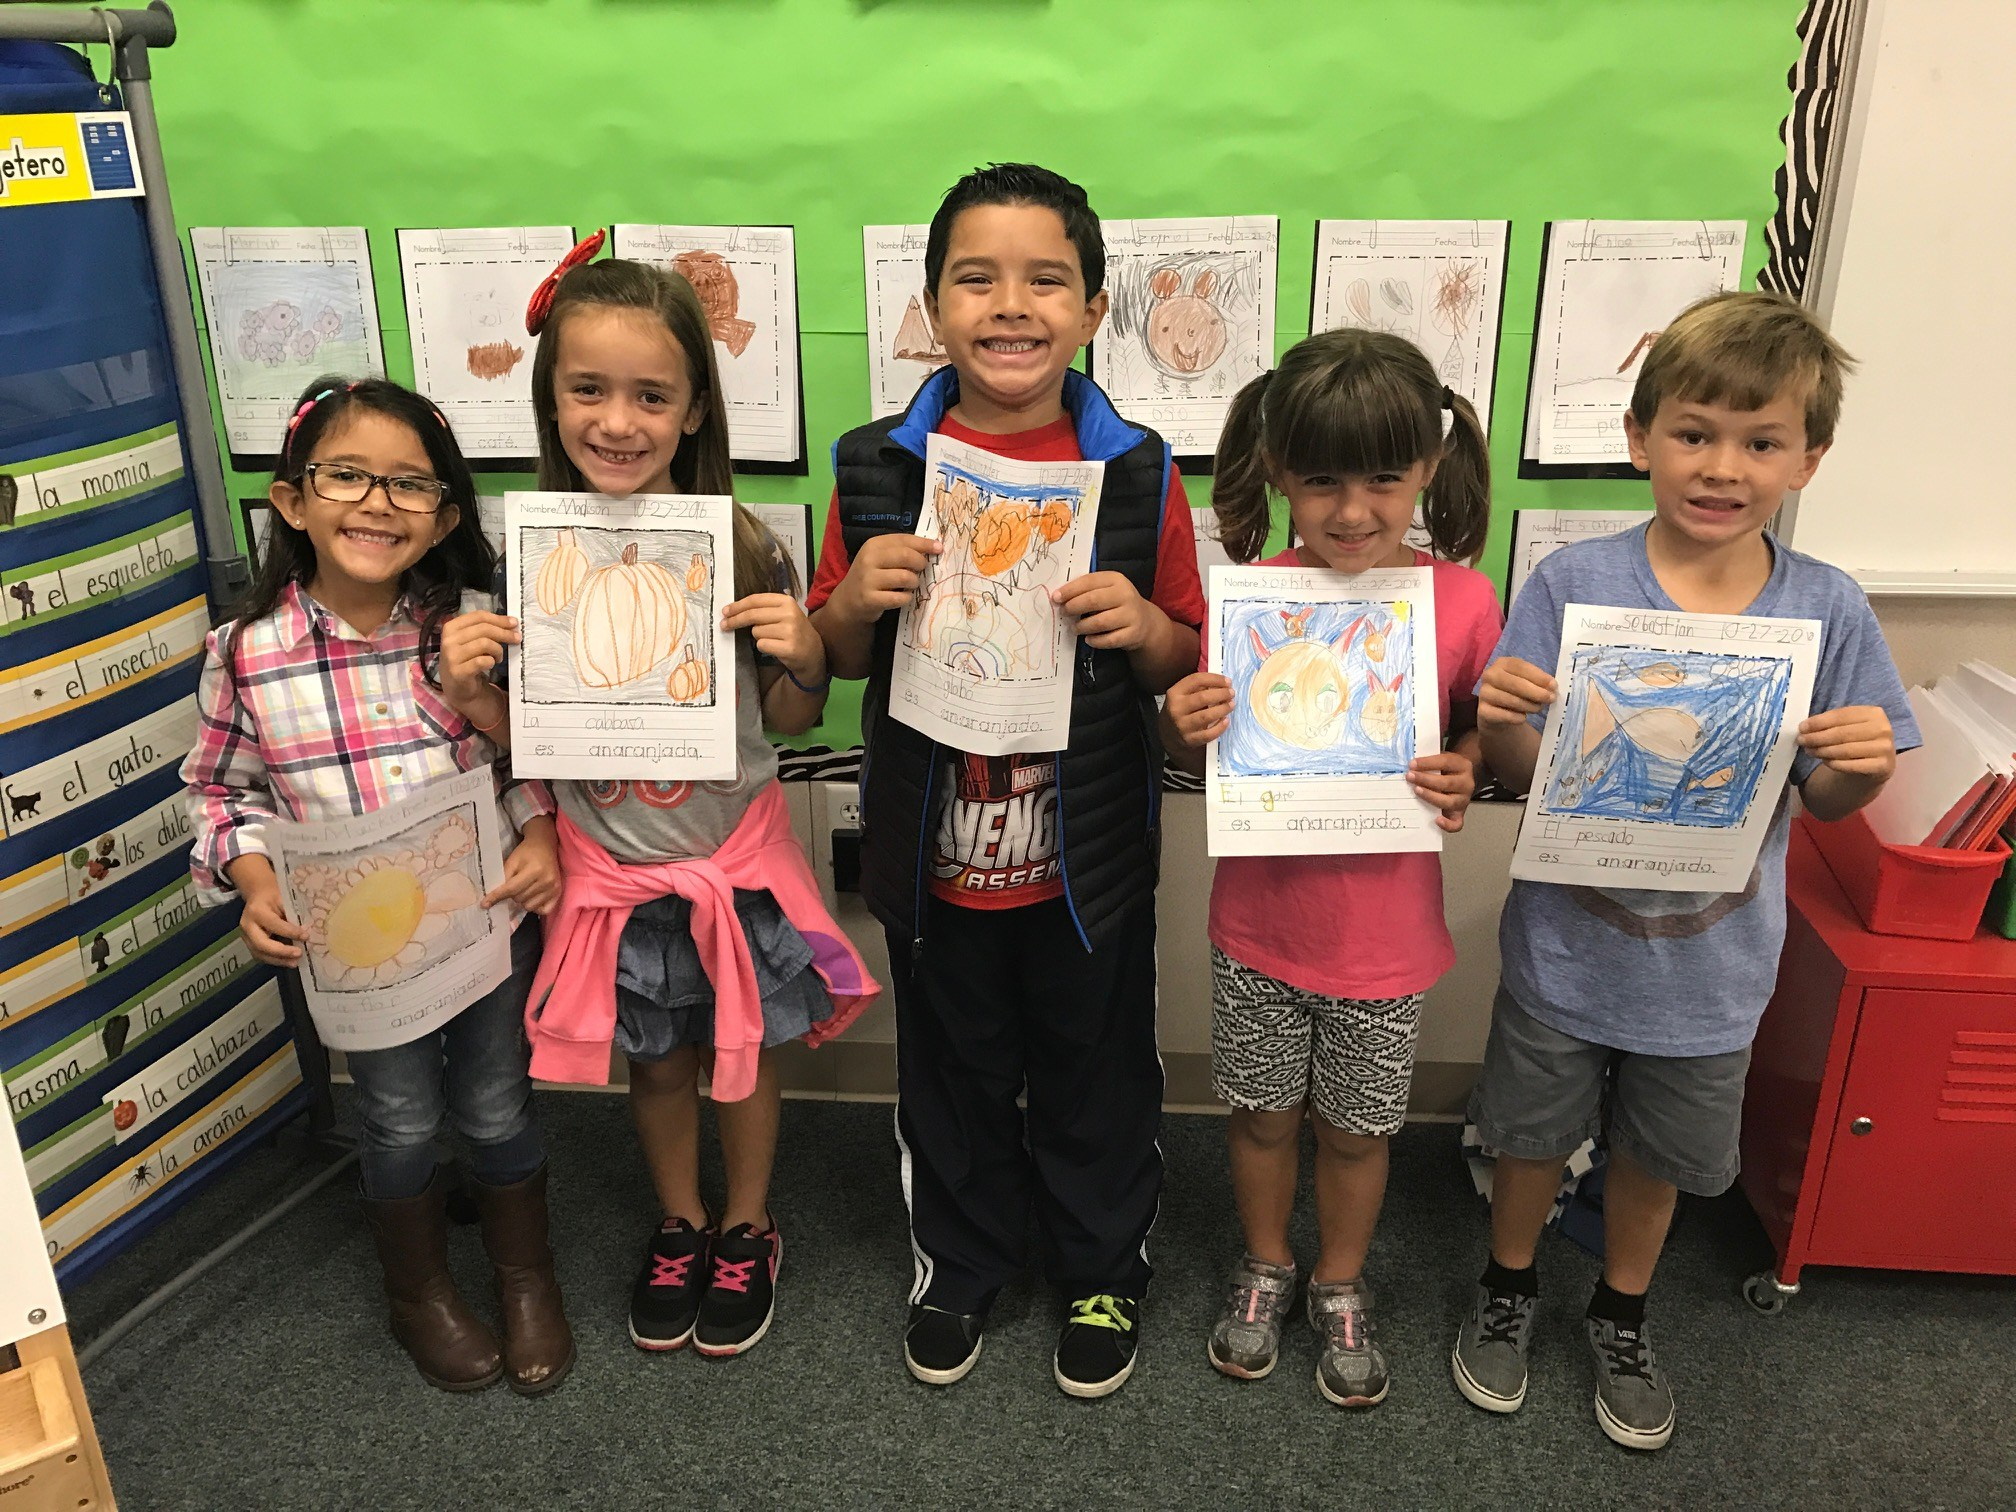 Students show off their writing